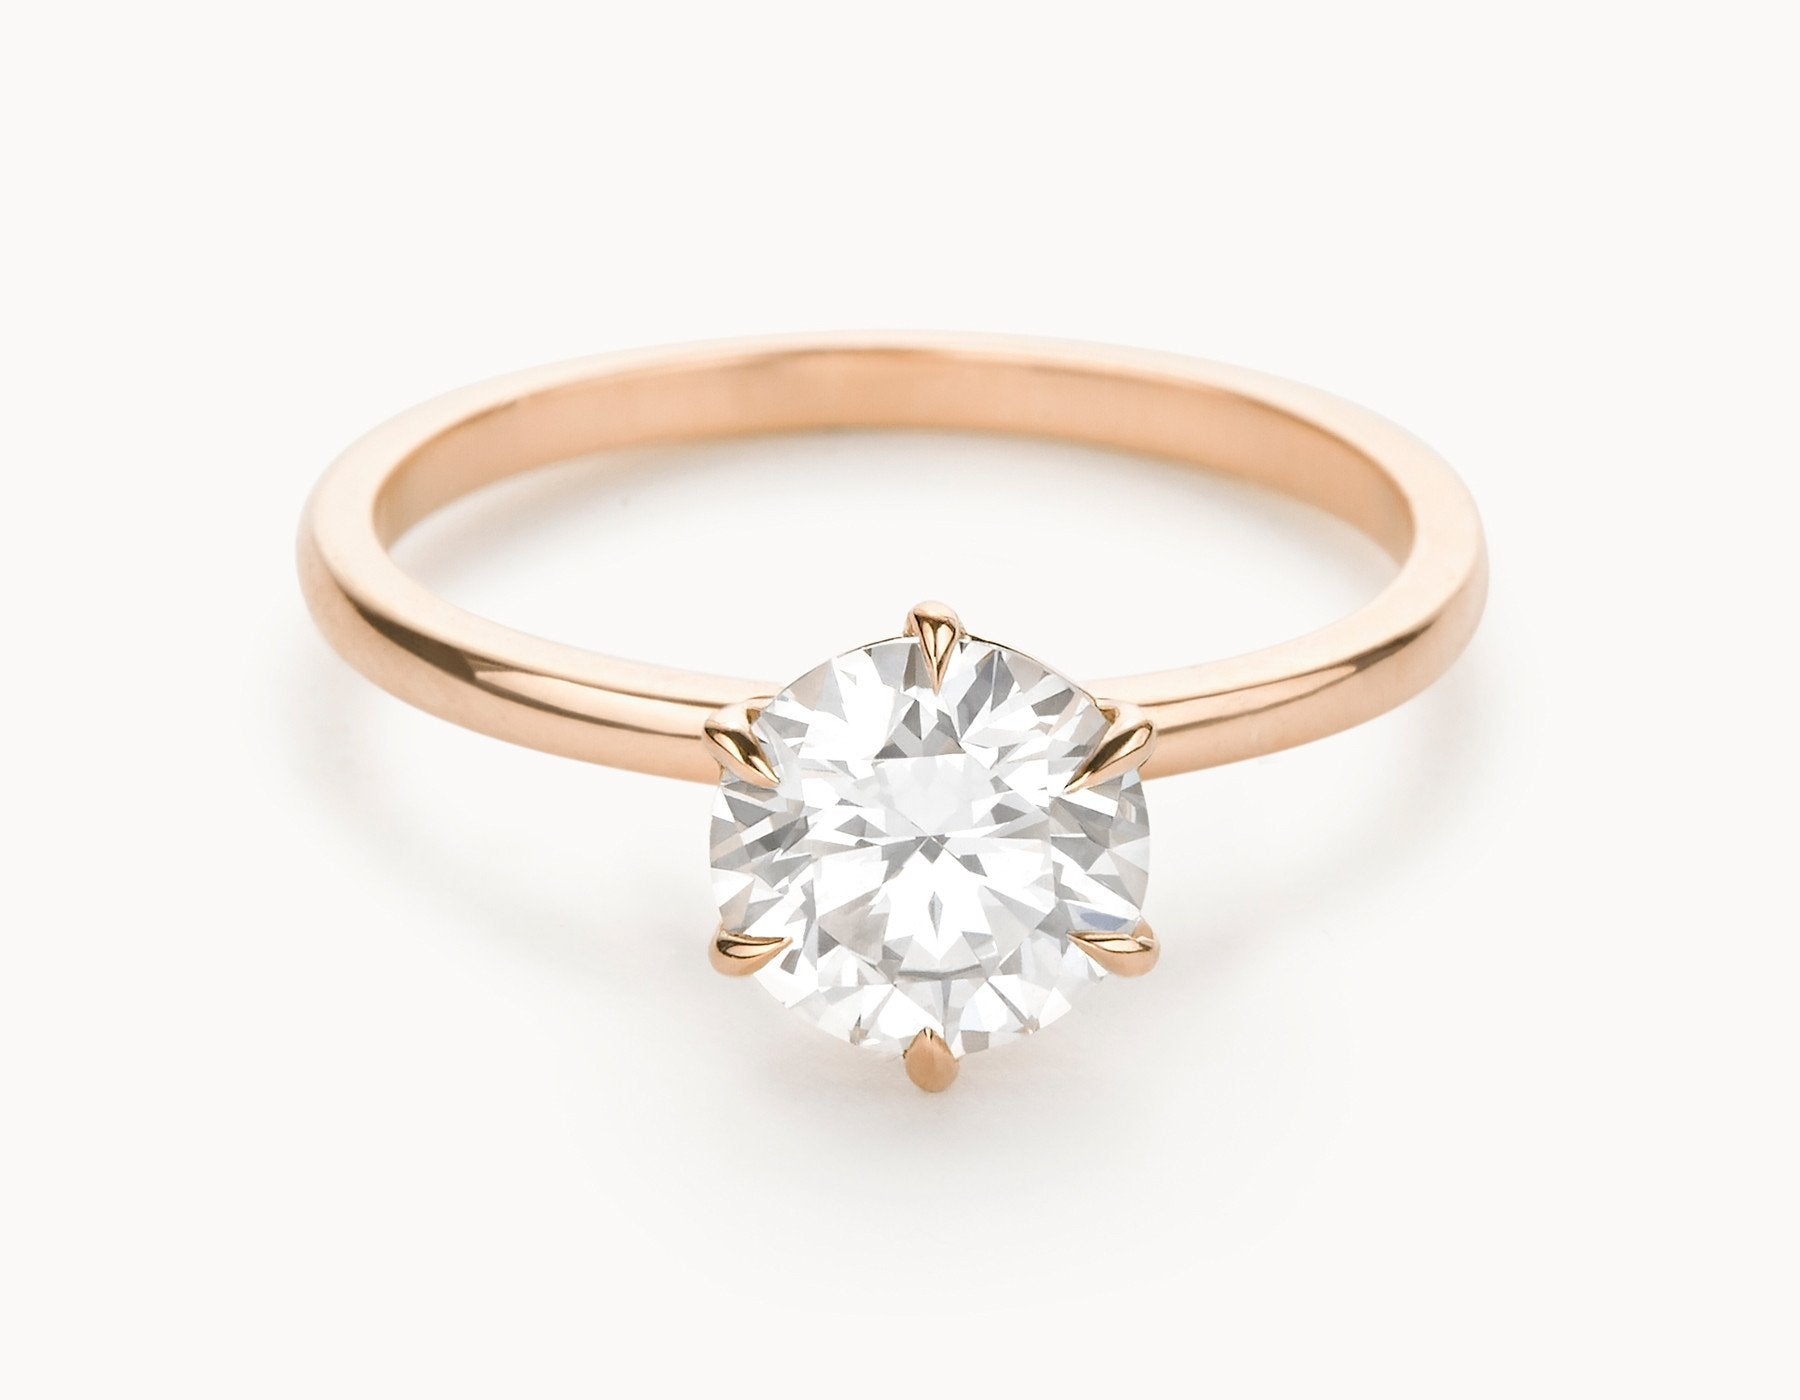 Minimal 18k Rose Gold Solitaire Round Brilliant Diamond Engagement Ring